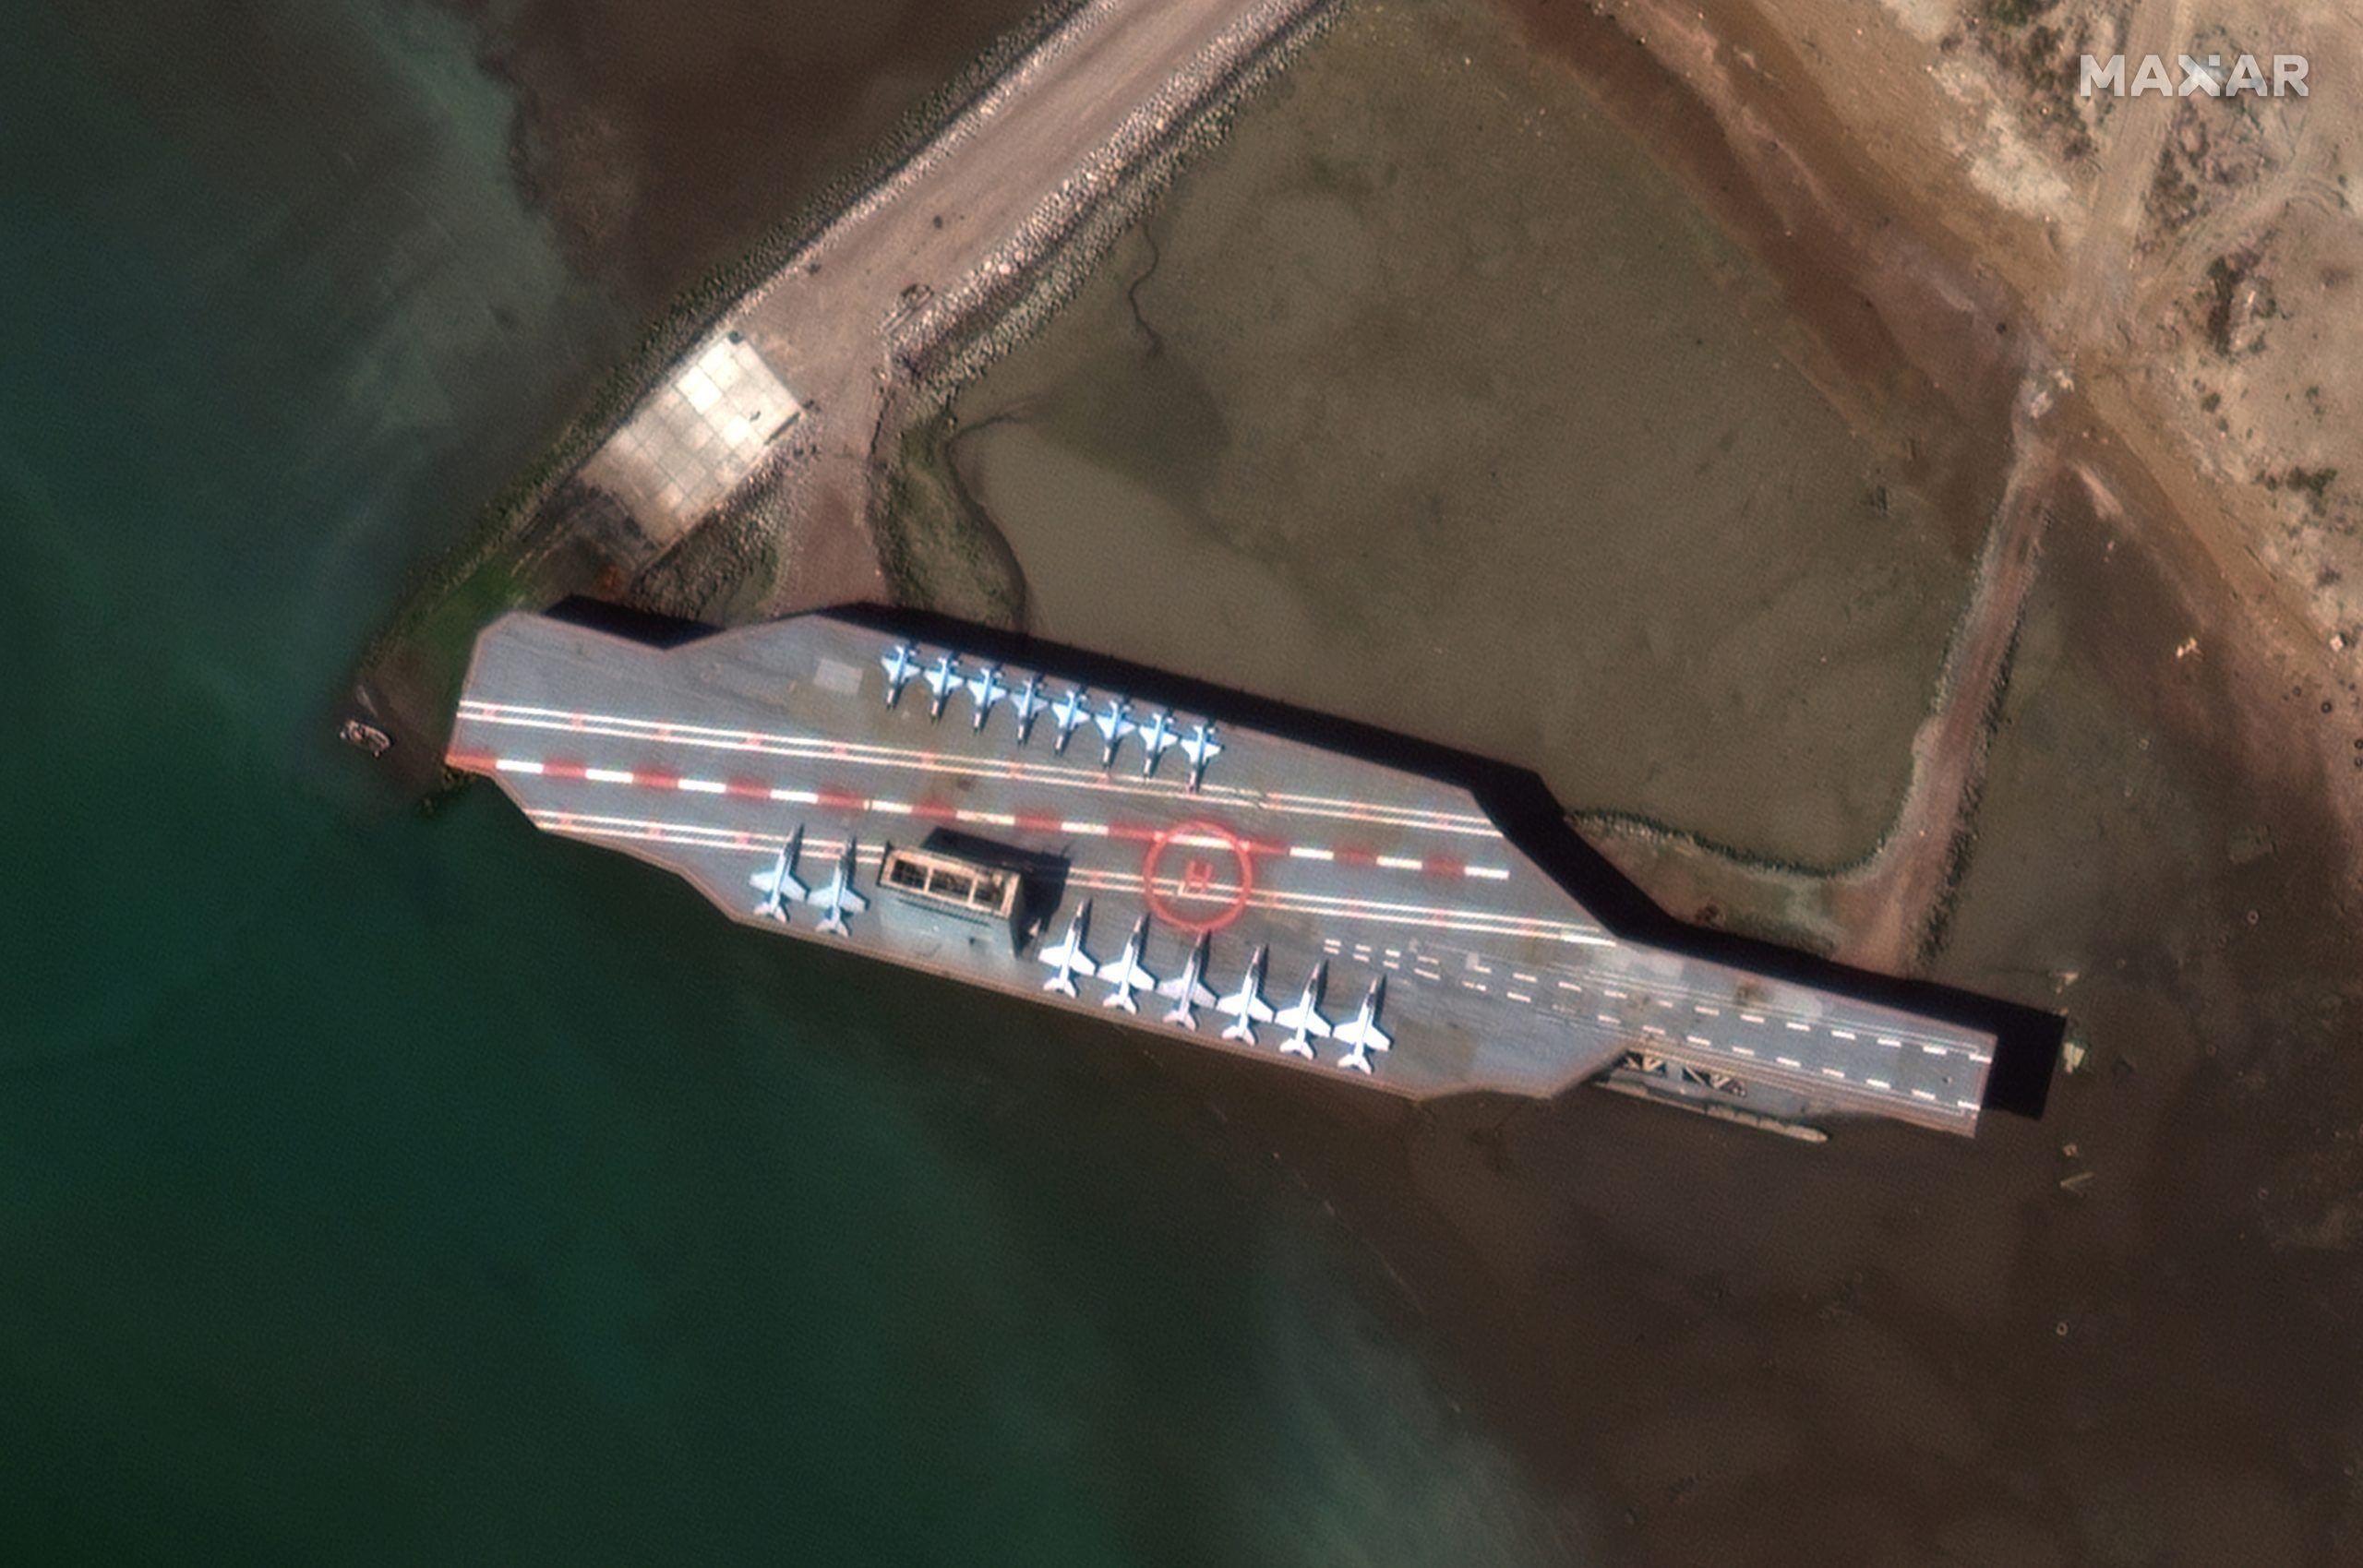 Iran's refurbished mockup aircraft carrier, used previously as a simulated U.S. target during a February, 2015 Iranian naval war games exercise, is seen at its home port of Bandar Abbas, Iran February 15, 2020. Picture taken February 15, 2020.